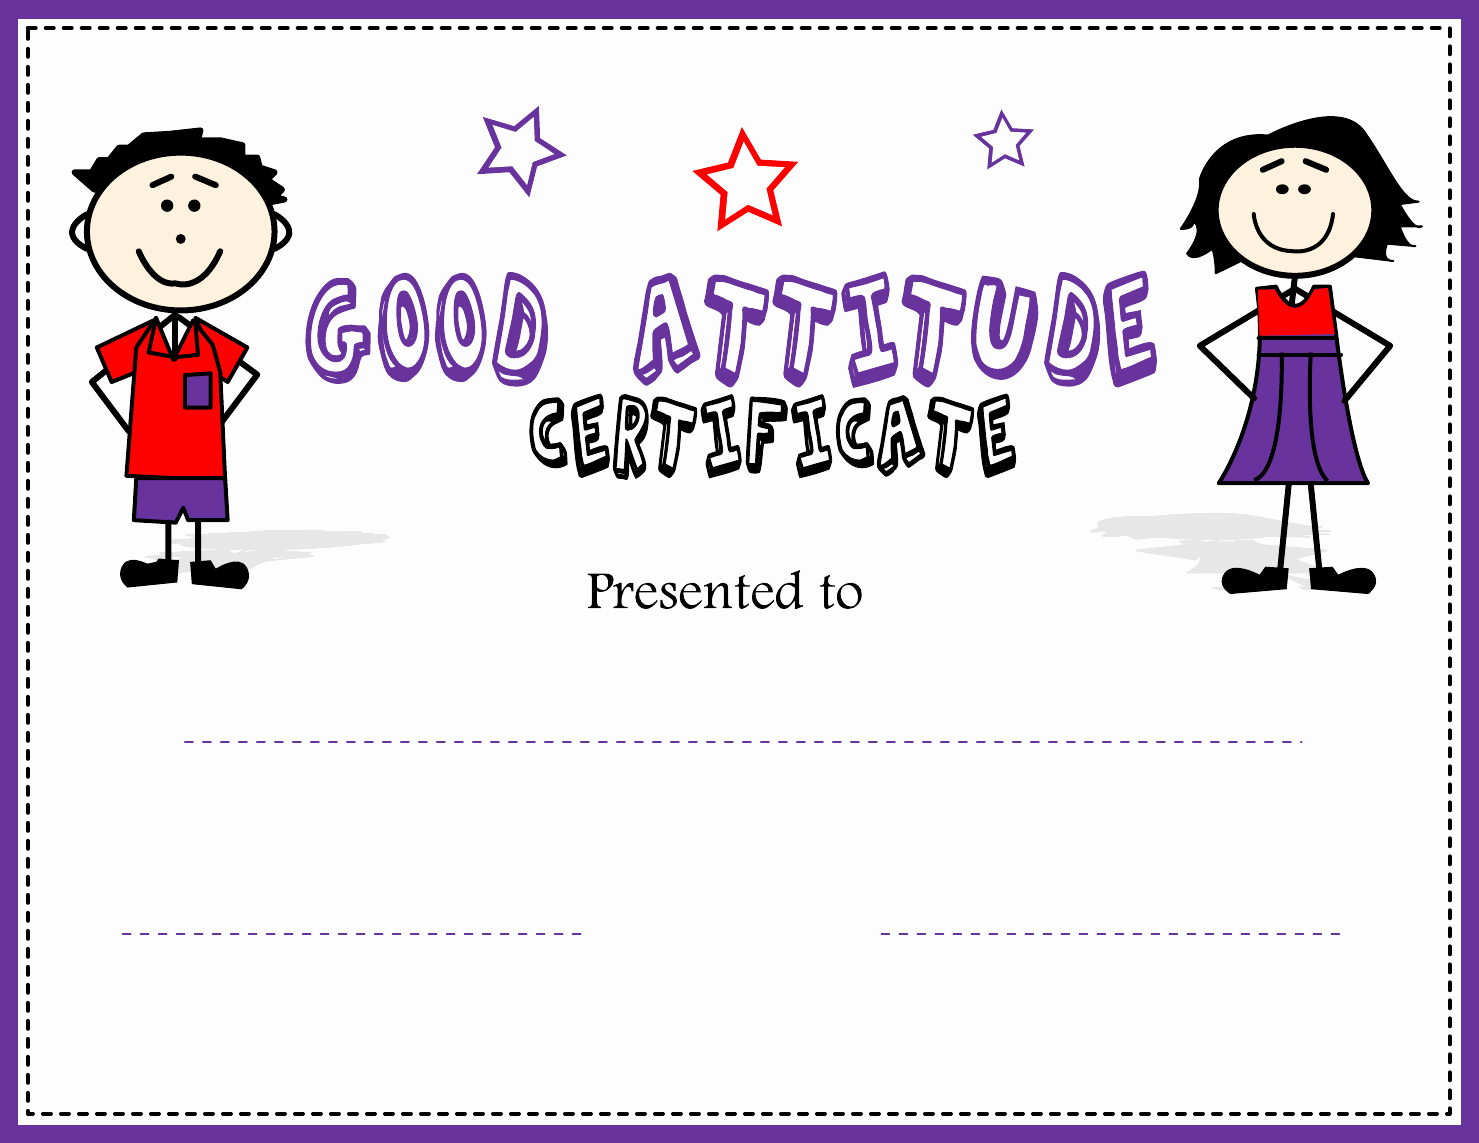 End Use Certificate Template Luxury Perfect attendance Certificate Template Edit Fill Sign